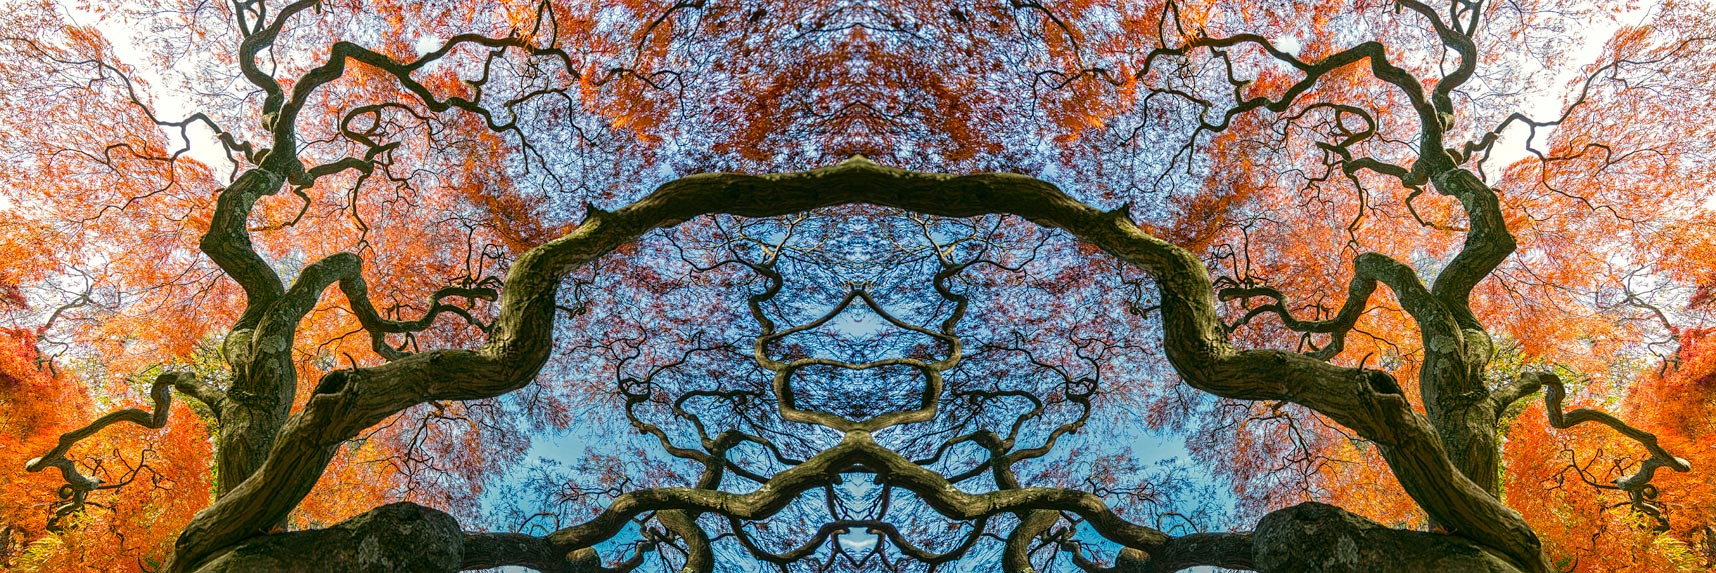 kaleidoscope Japanese maple trees branches fall leaves orange